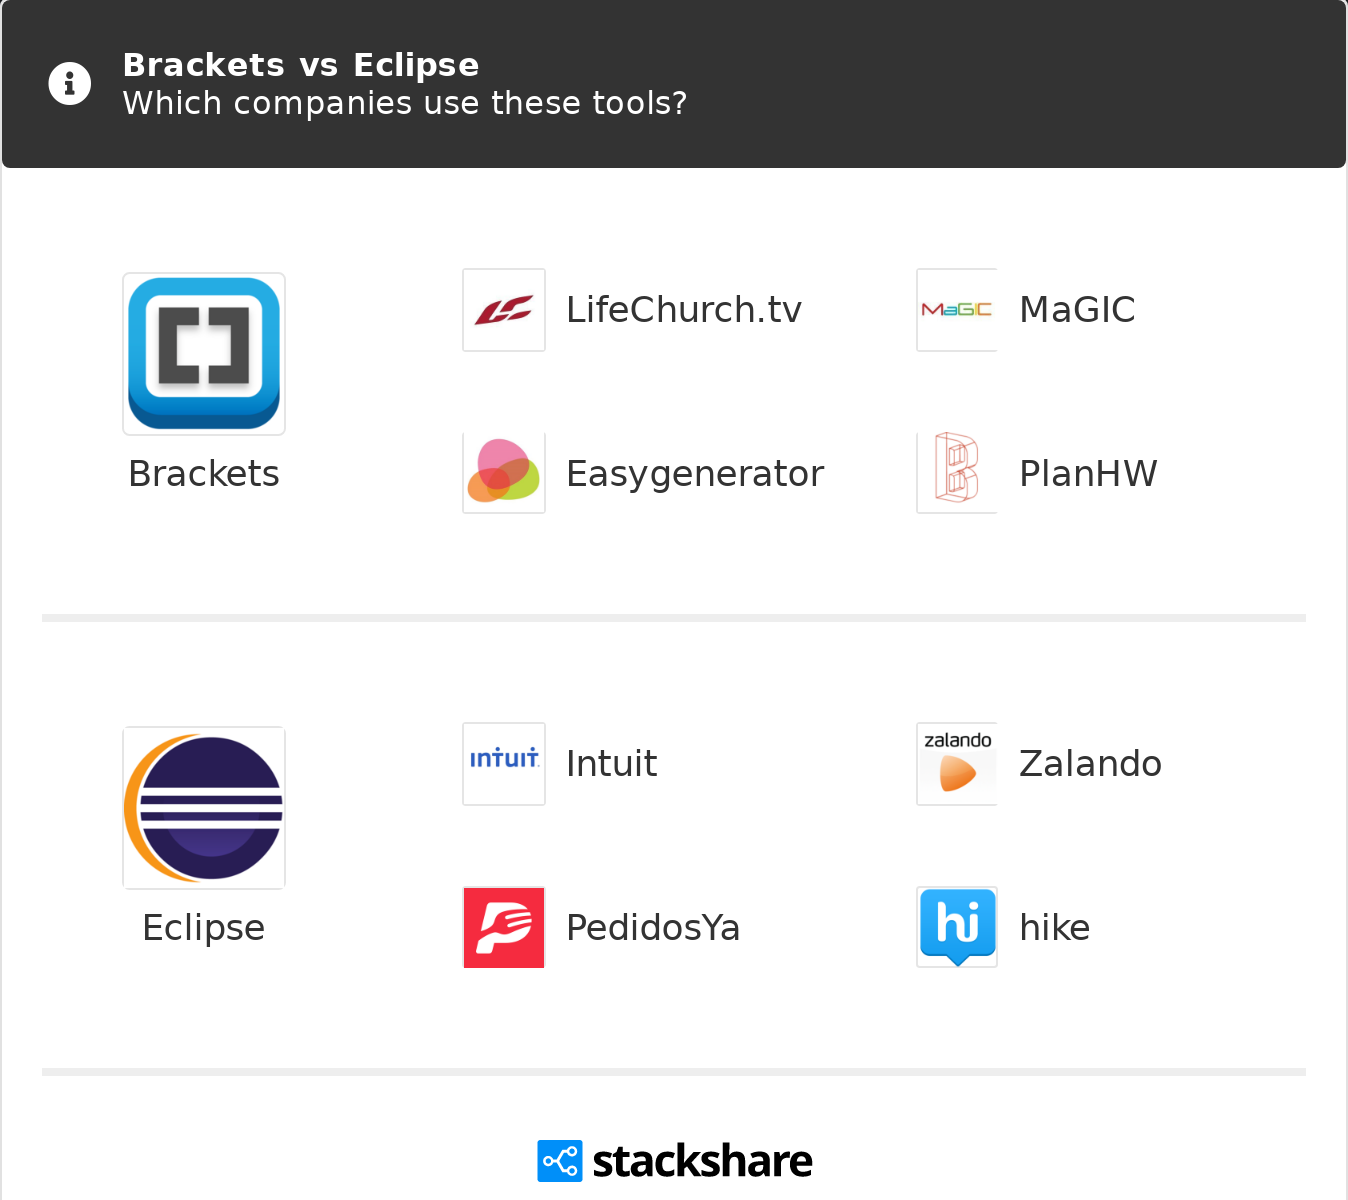 Brackets vs Eclipse   What are the differences?